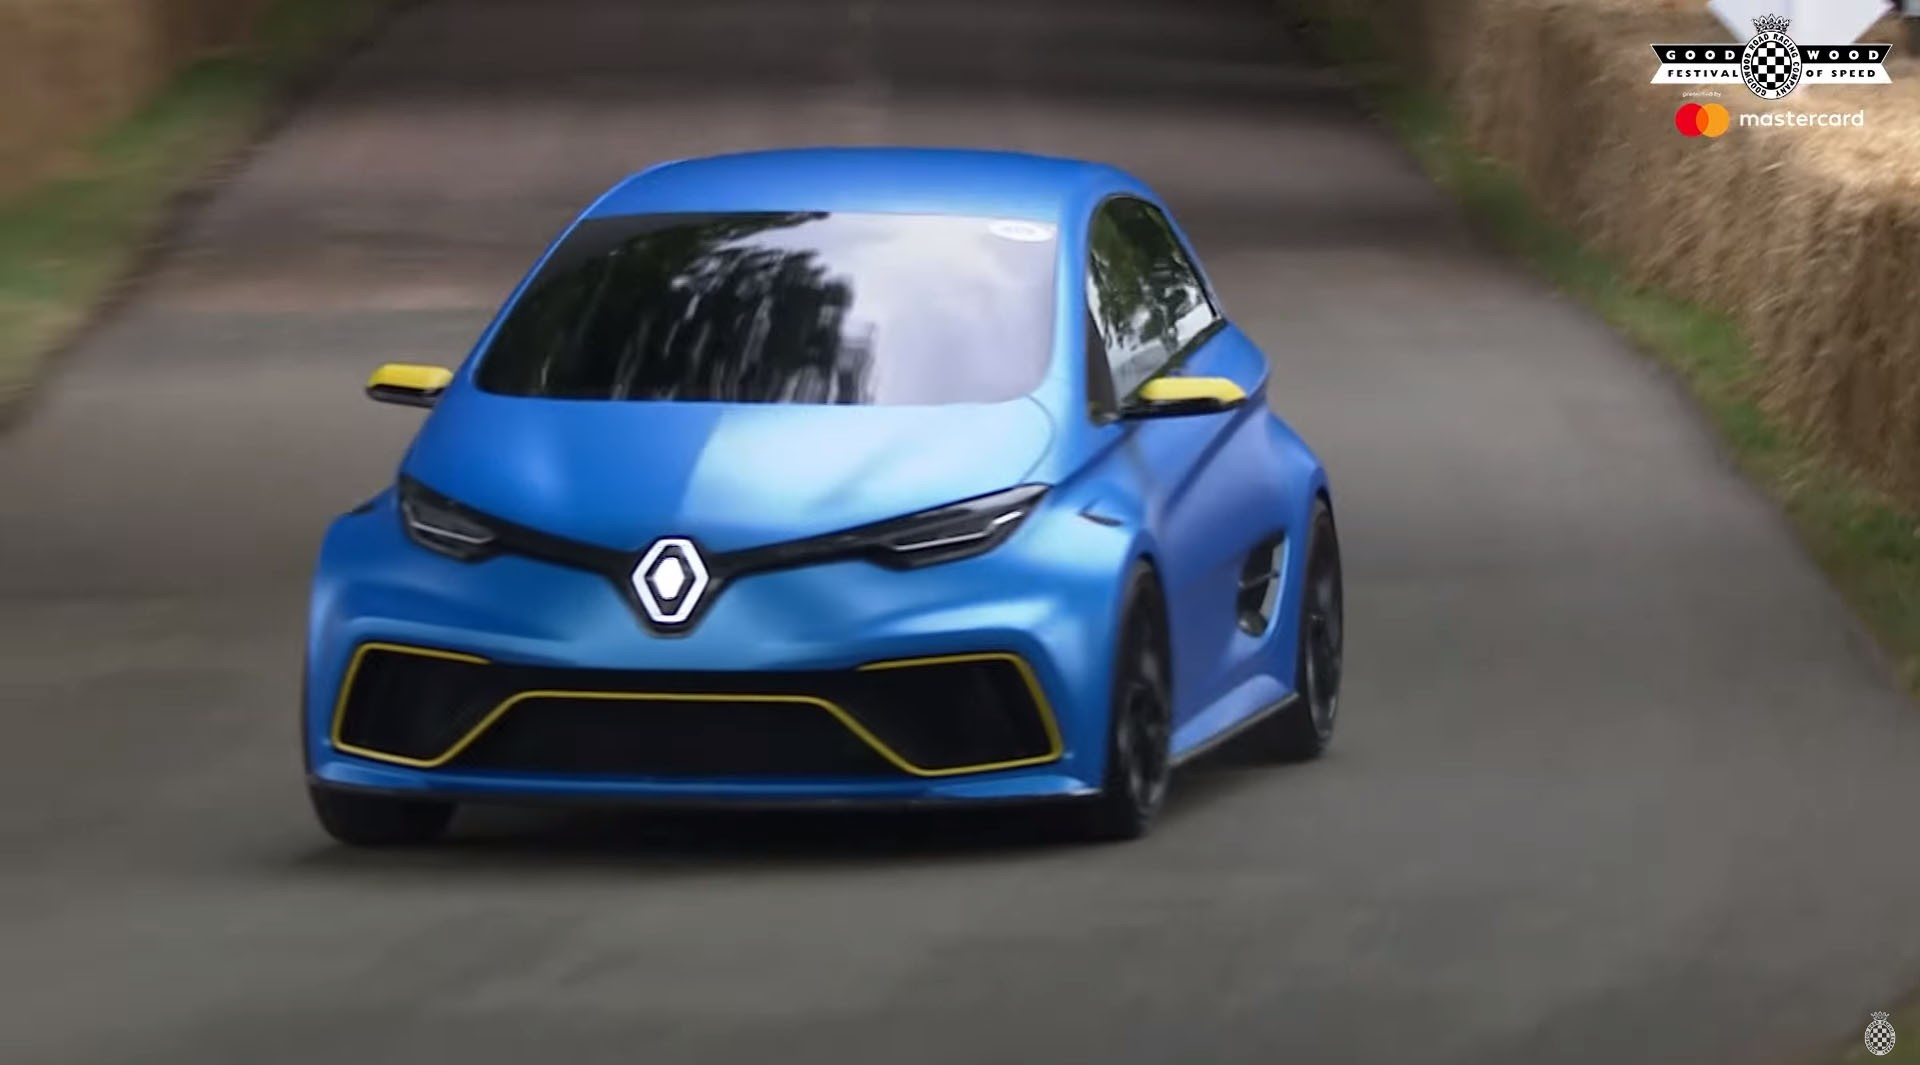 renault zoe e sport concept makes rare goodwood appearance is not alone autoevolution. Black Bedroom Furniture Sets. Home Design Ideas